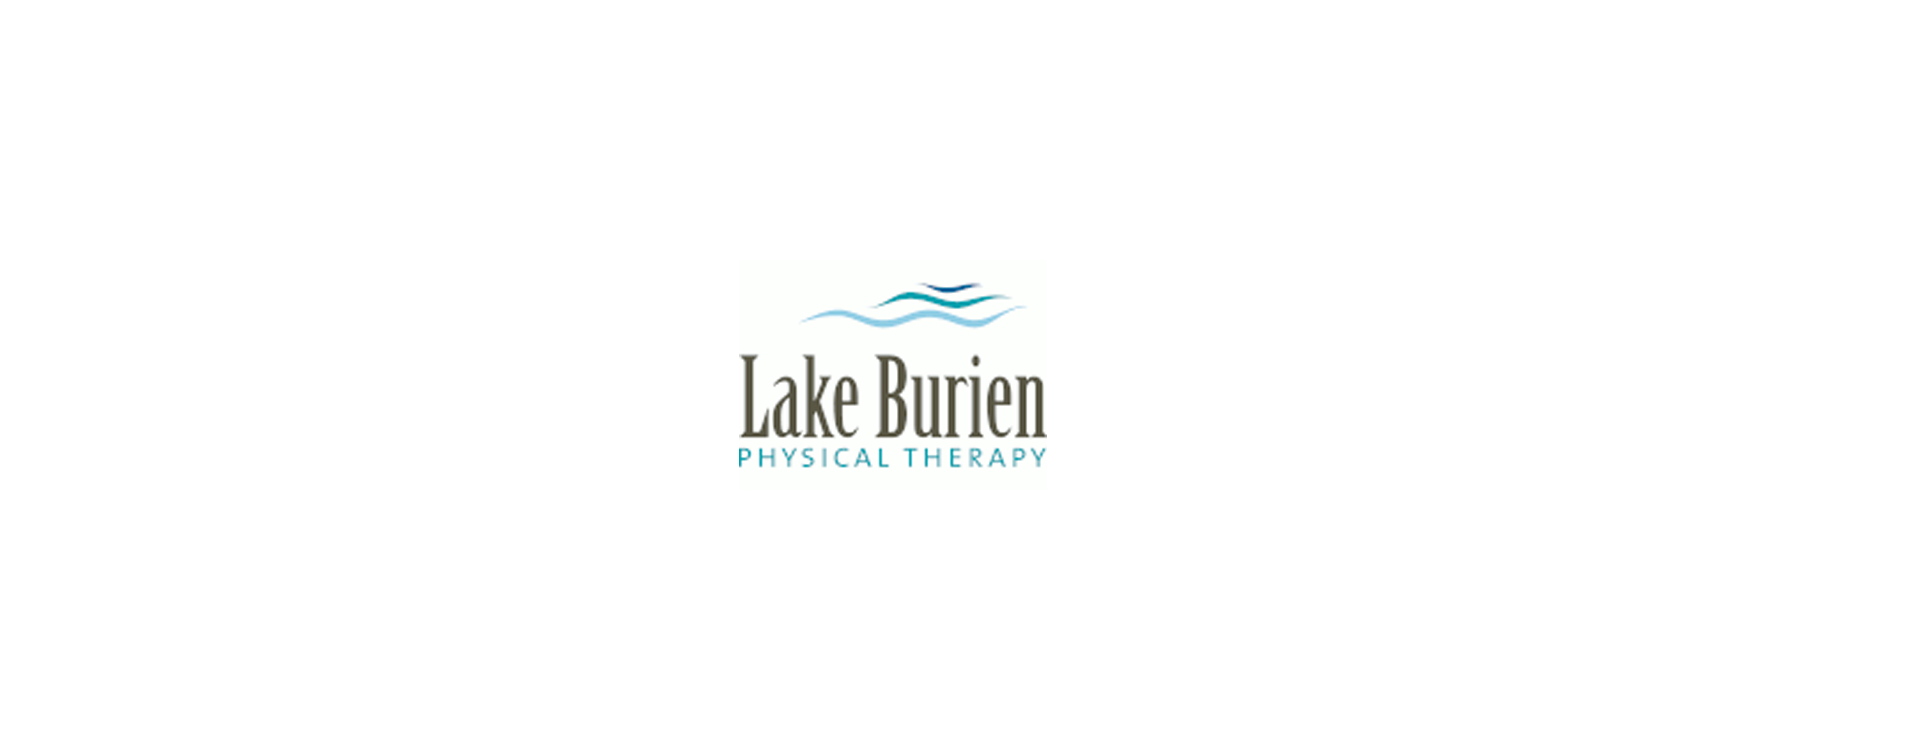 Lake Burien Physical Therapy